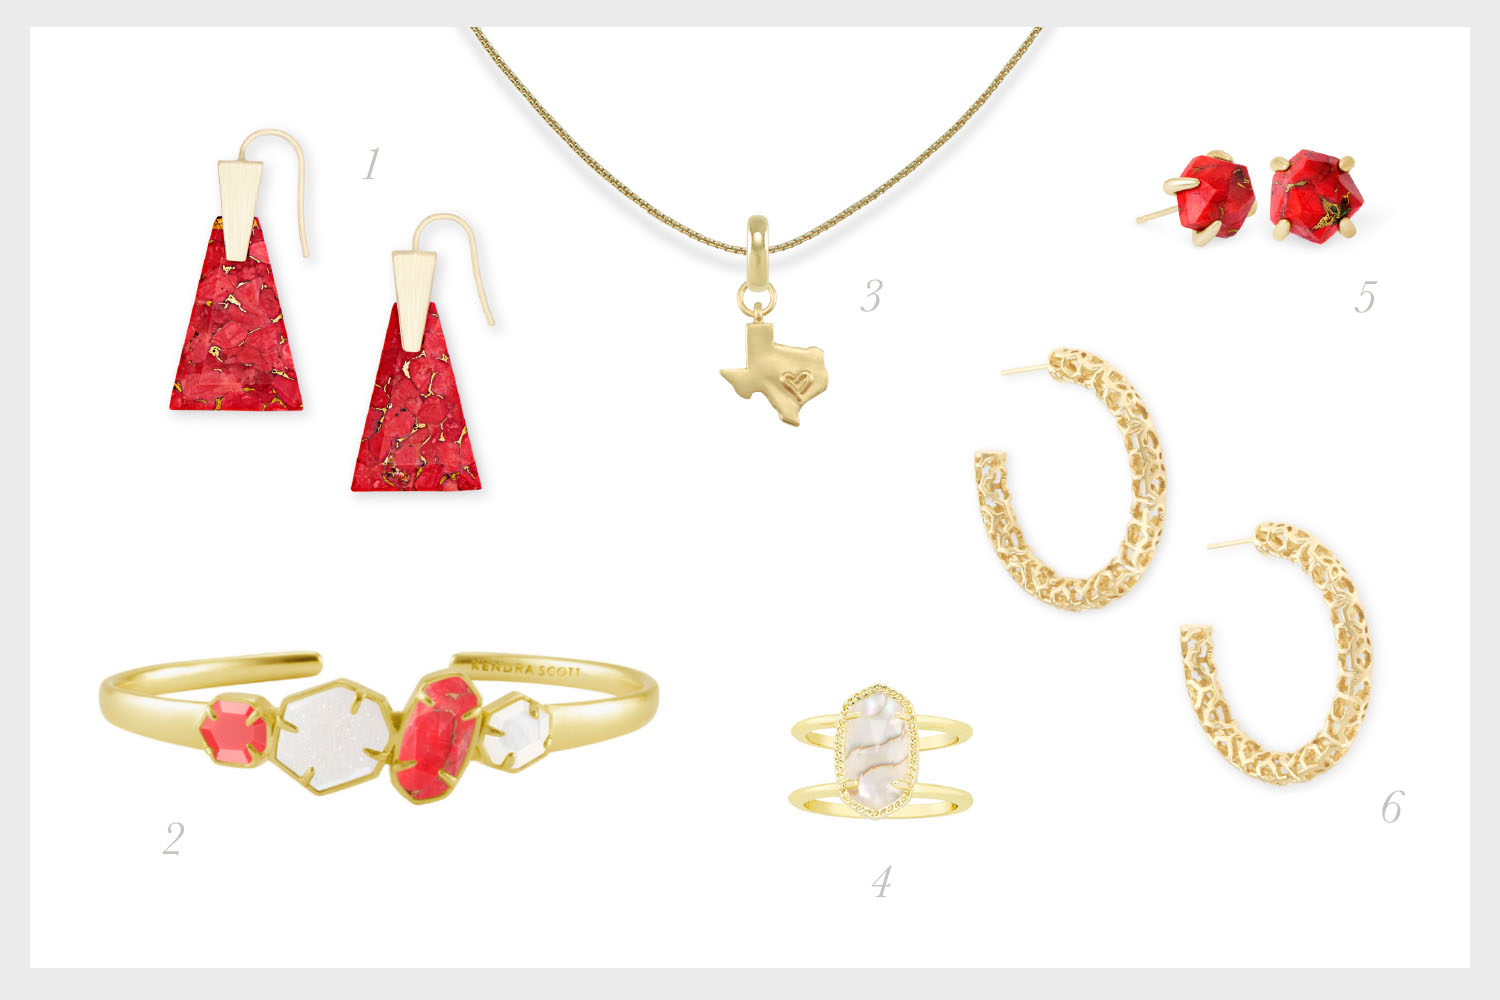 1.    Collins Gold Drop Earrings in Bronze Veined Red Magnesite   , 2.    Ruby Gold Cuff Bracelet in White-Mother-of-Pearl, Bronze Veined Red Magnesite, Iridescent Drusy, and Bright Red   , 3.    State of Texas Charm with Thin Adjustable Chain Necklace in Gold,    4.    Elyse Gold Cocktail Ring in White Abalone   , 5.    Ellms Gold Small Stud Earrings in Bronze Veined Red Magnesite